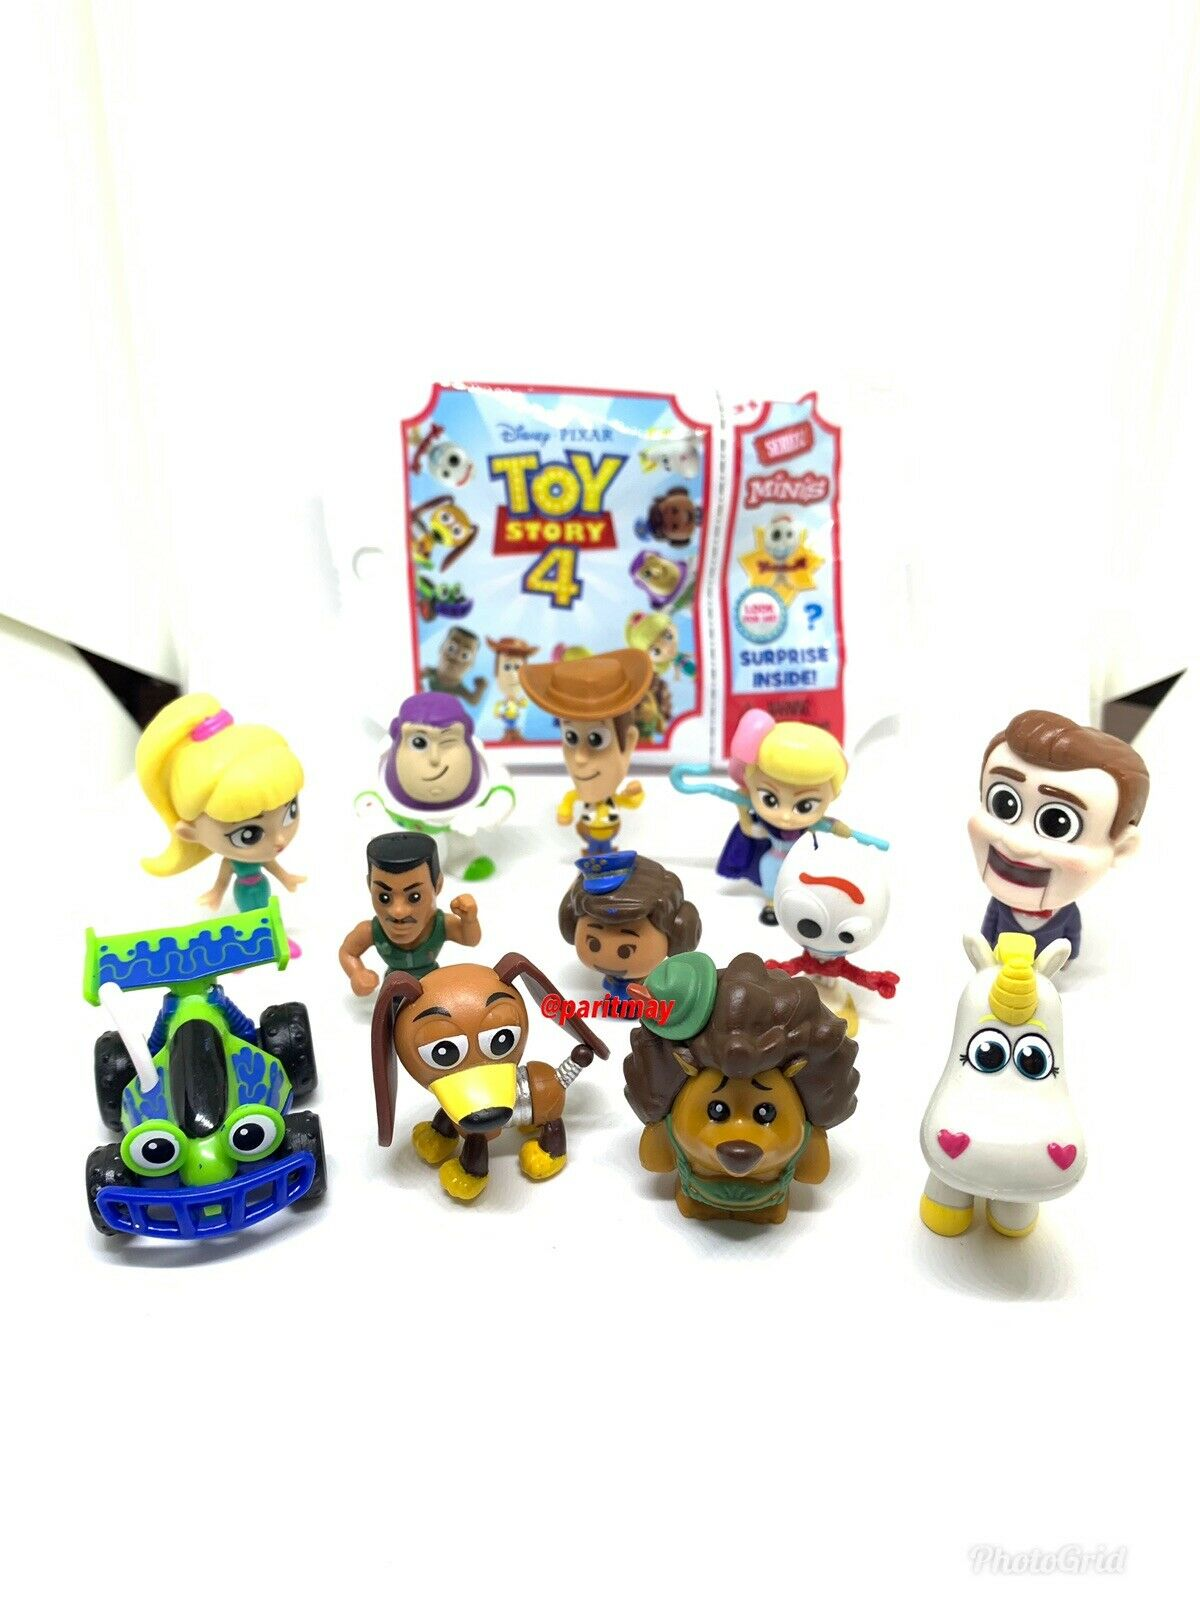 Complete Set    Series 2 Toy Story 4 Mini Mystery Blind Tasche (All 12 Figures)